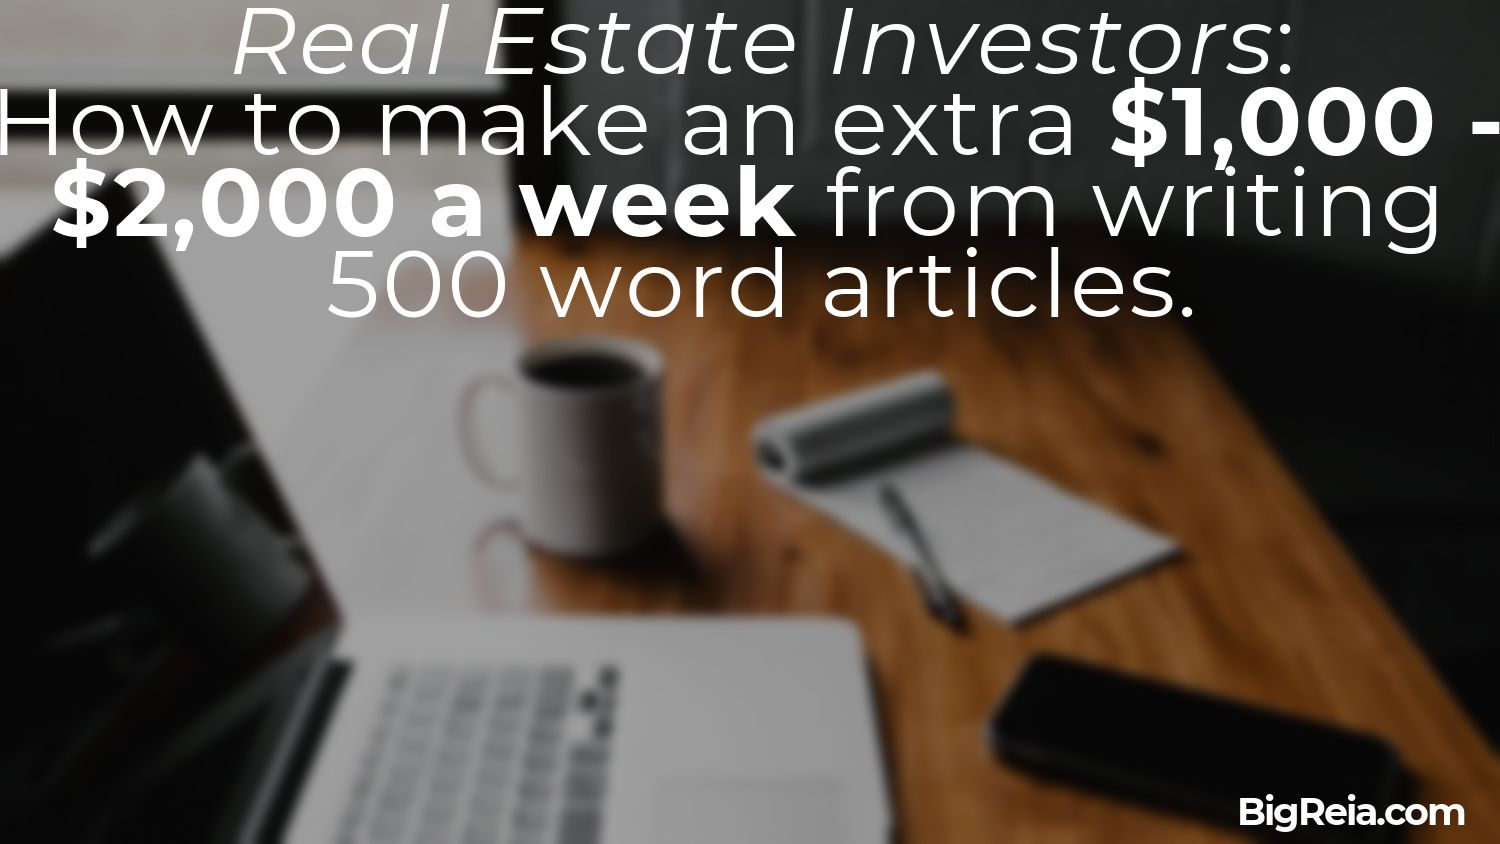 Copywriting for real estate investors 500 word articles for 2k a week